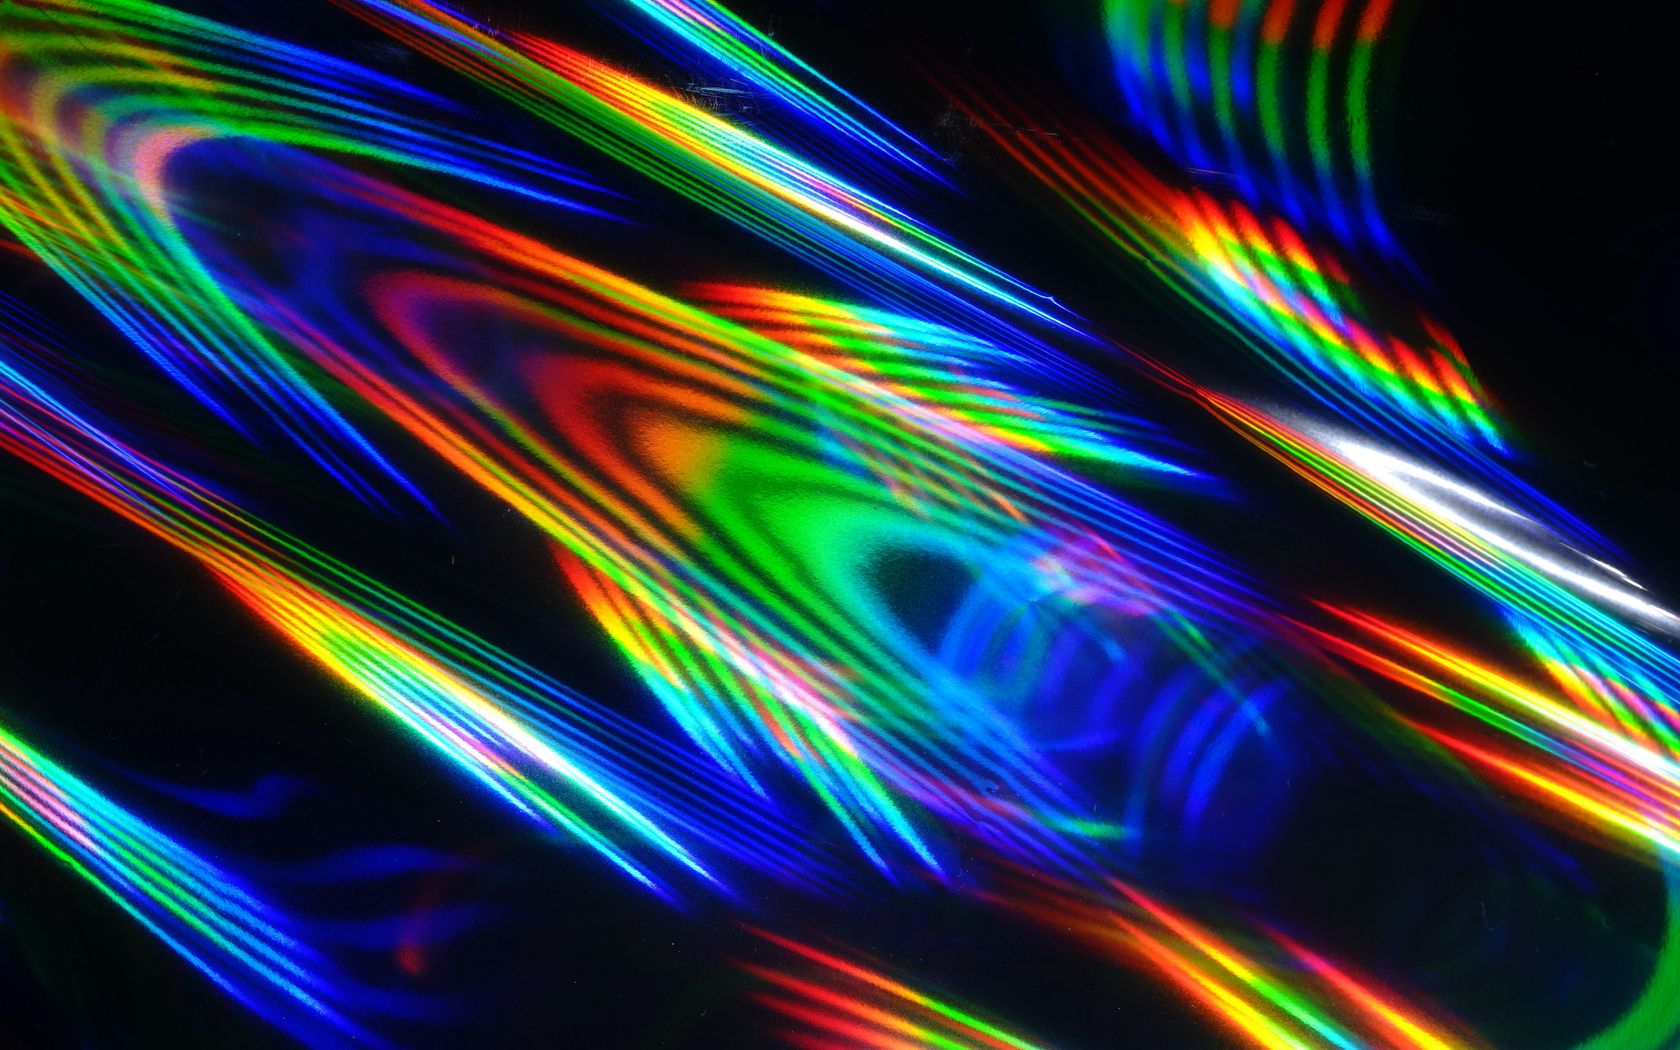 1680x1050 Wallpaper rays, colorful, iridescent, light, abstraction